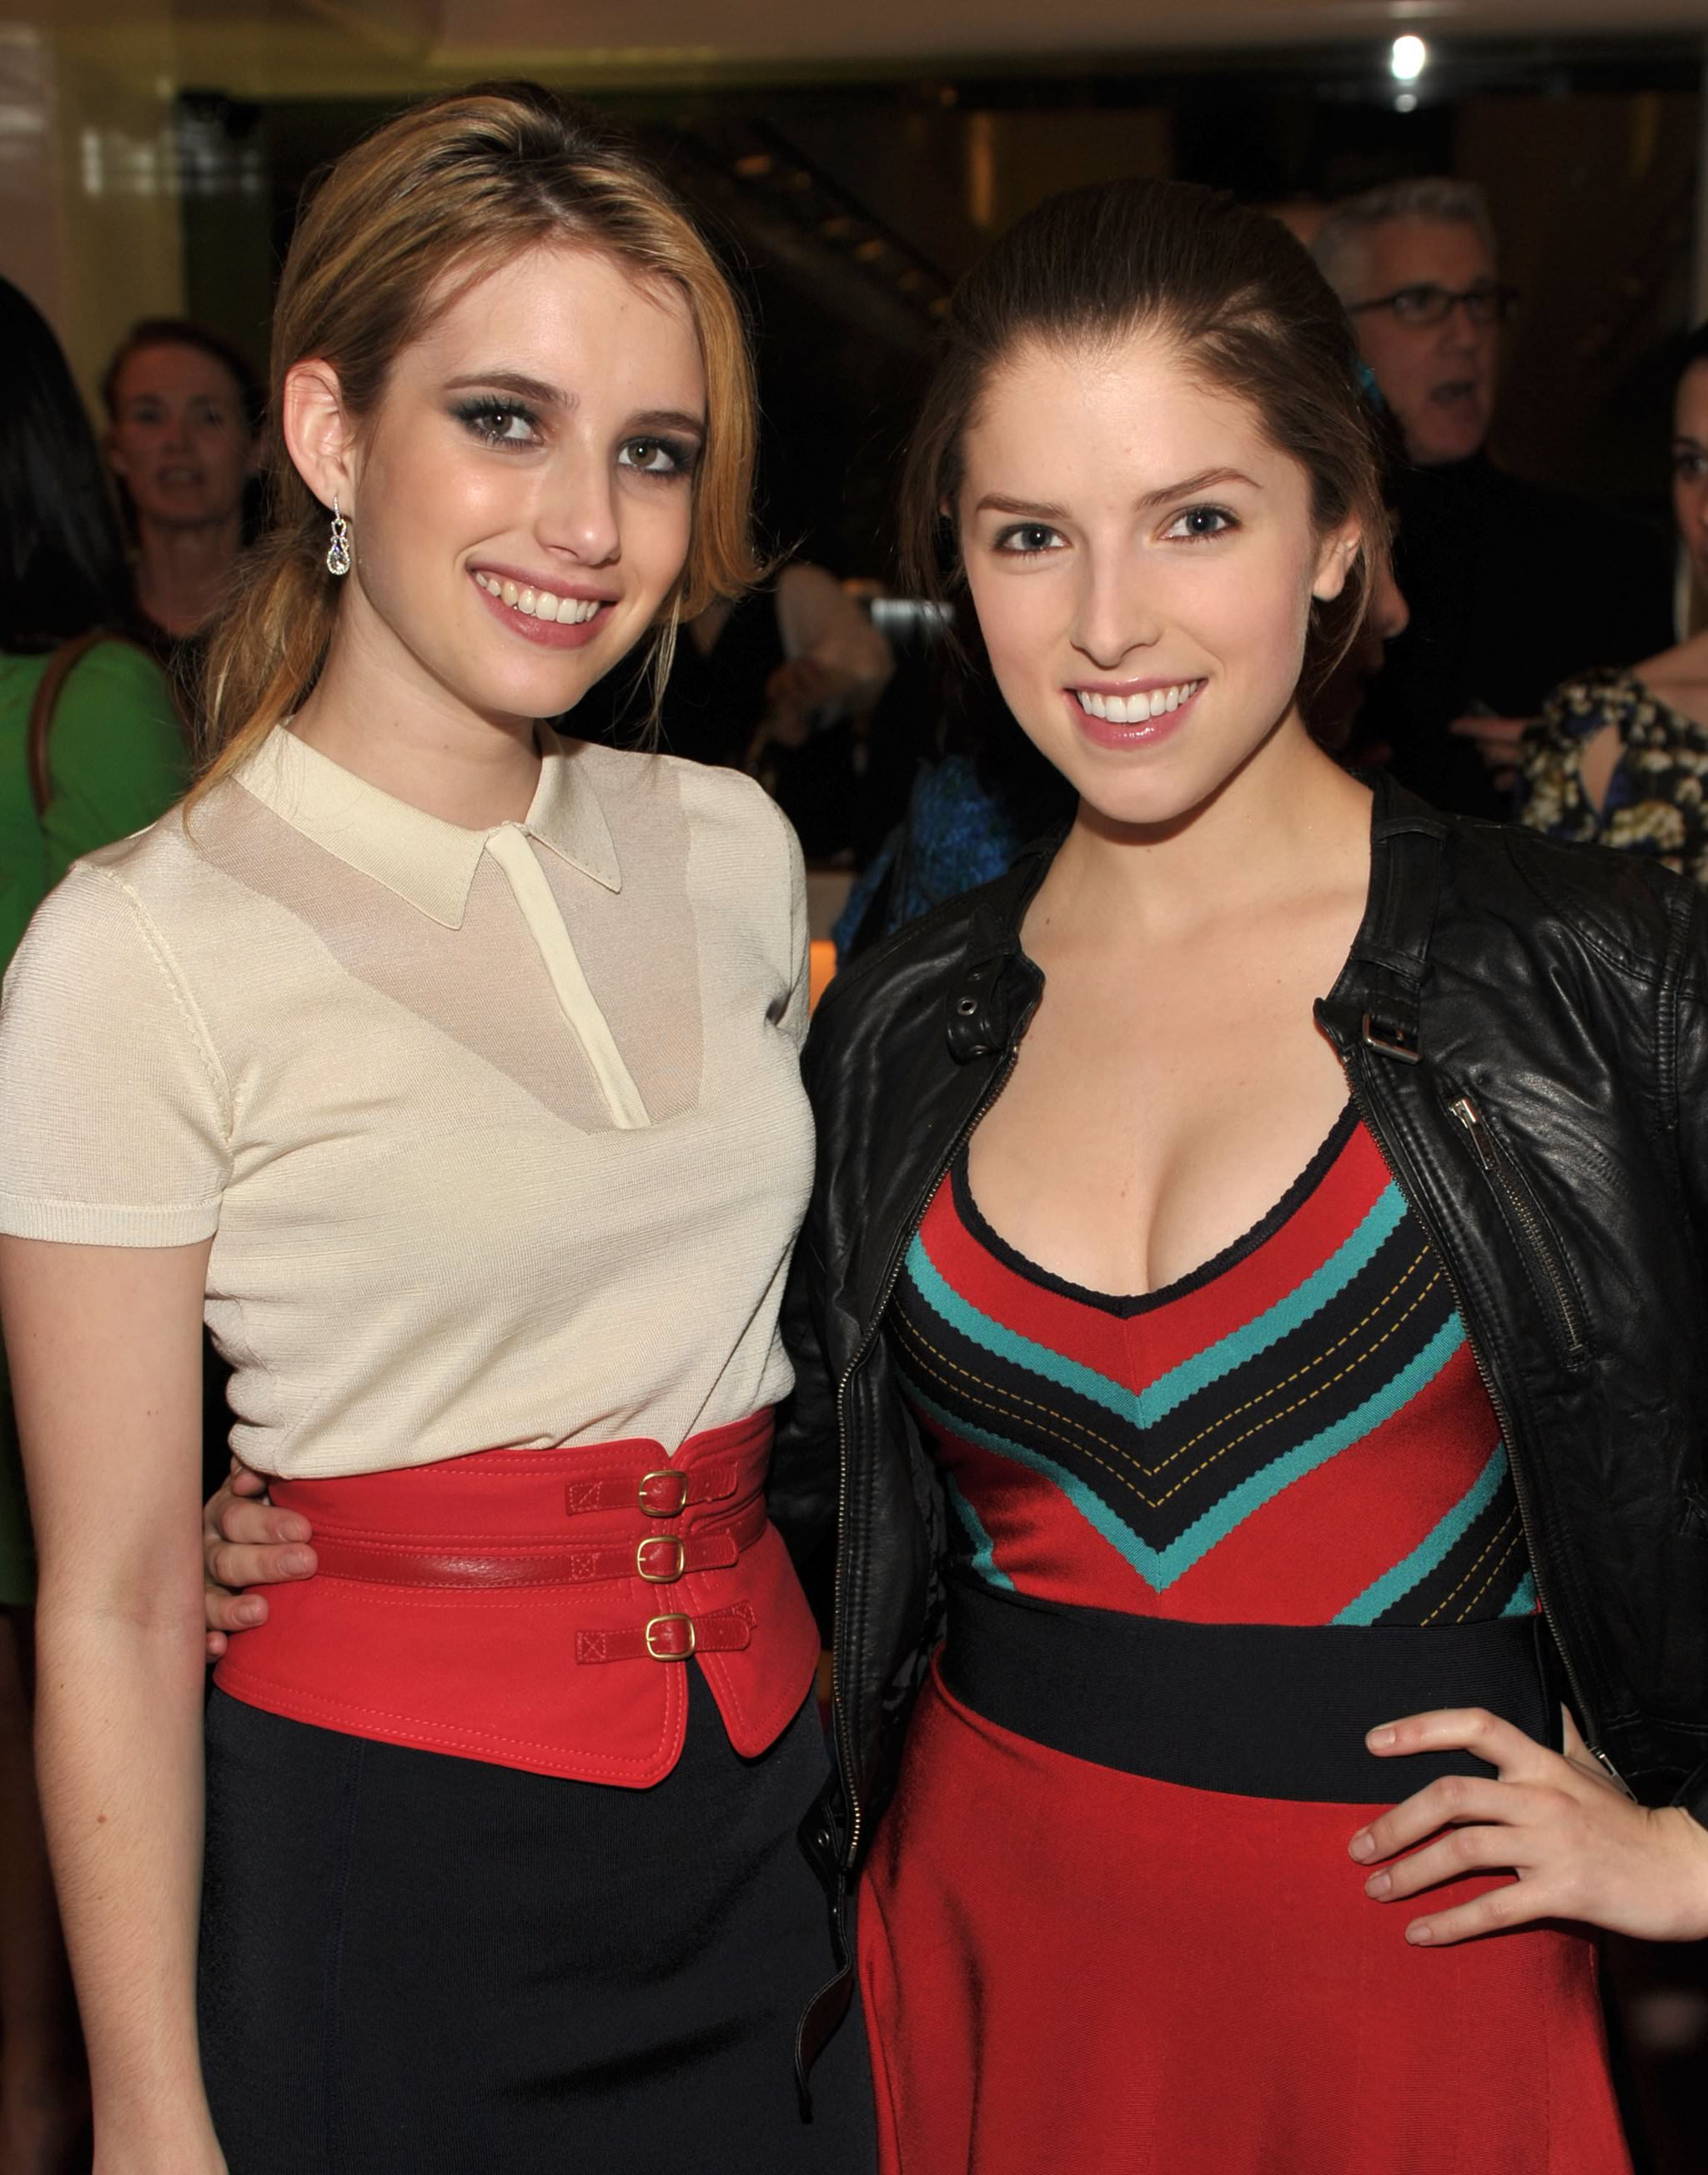 34 - Emma Roberts with Anna Kendrick